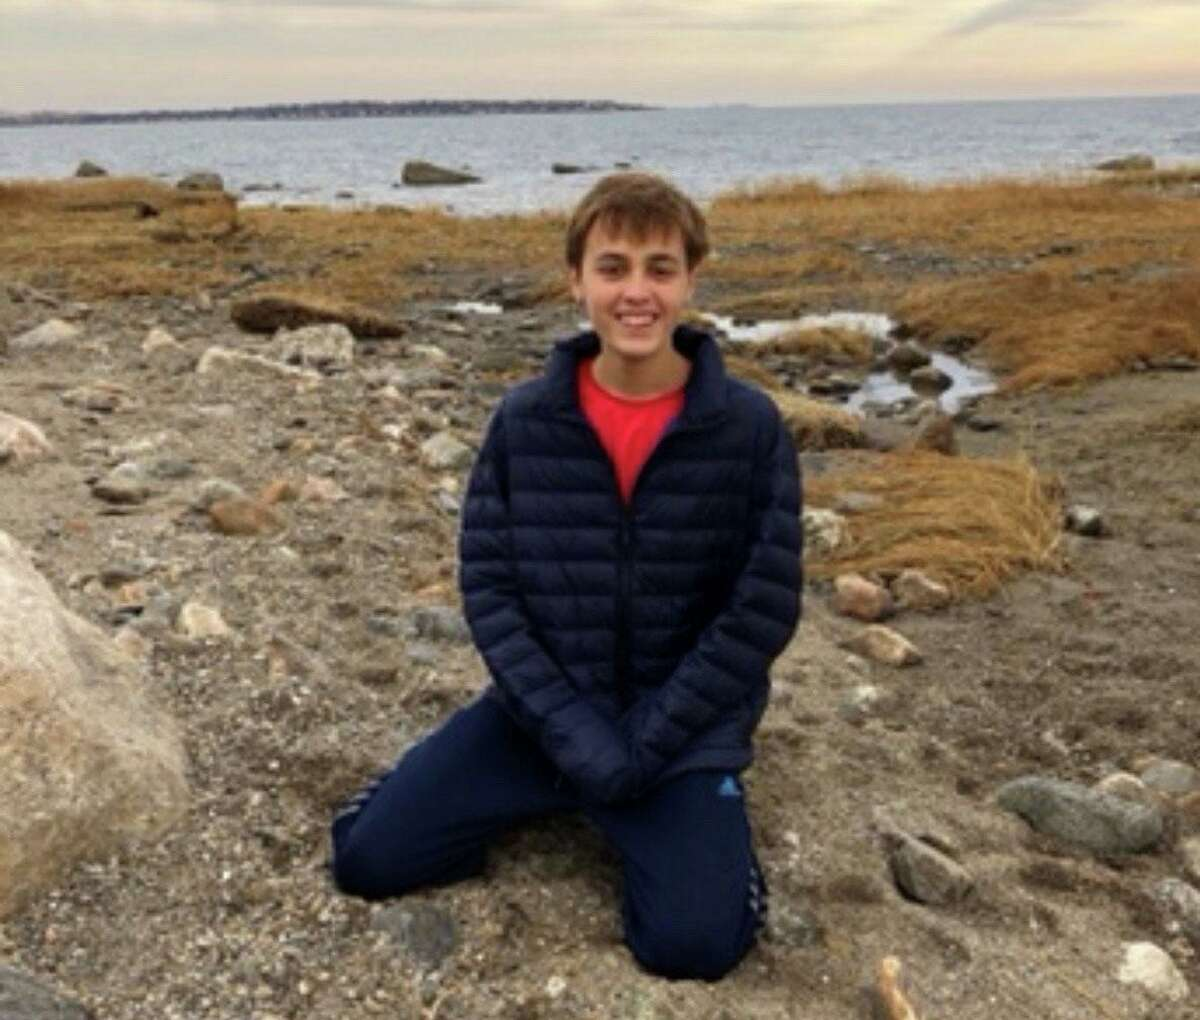 Luke, 15, a Greenwich High School sophomore, was a passionate environmentalist who inspired a town-wide beach clean-up at Tod's Point that drew out hundreds of participants. He died Saturday, 20 months after being diagnosed with glioblastoma.